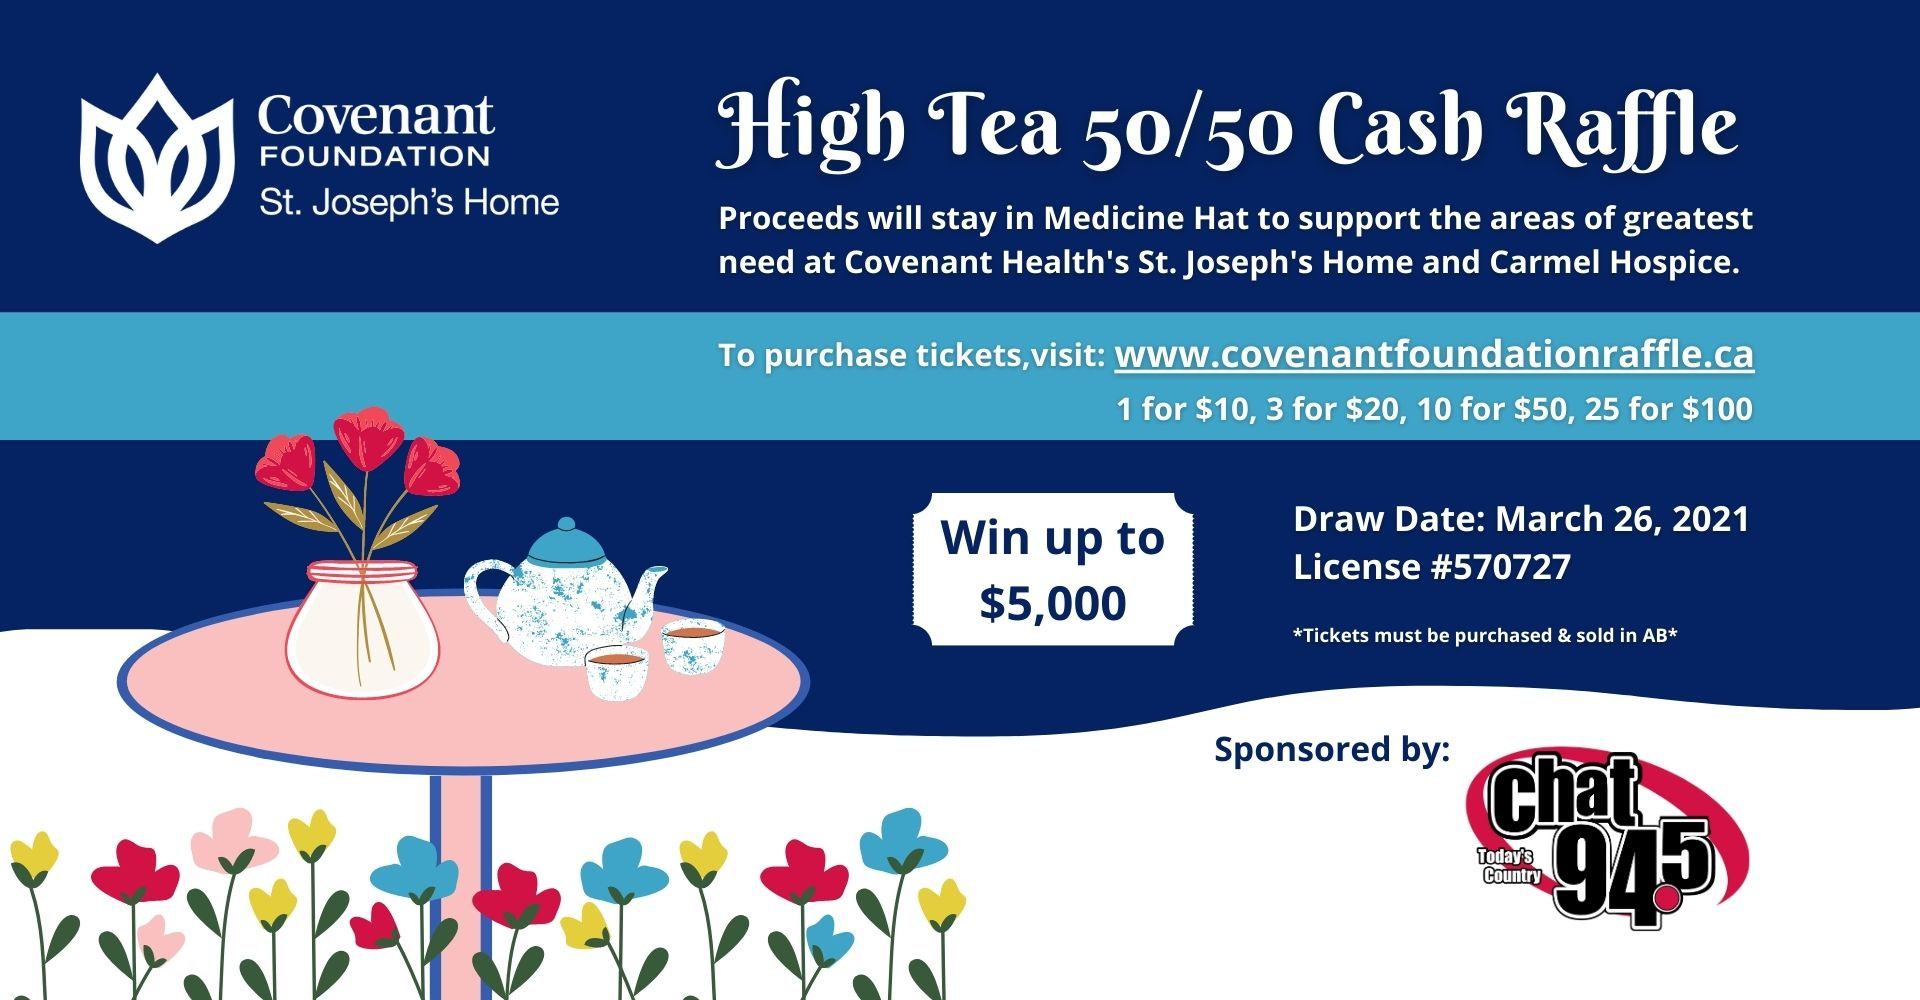 Tickets are on sale now for the High Tea 50/50 cash raffle